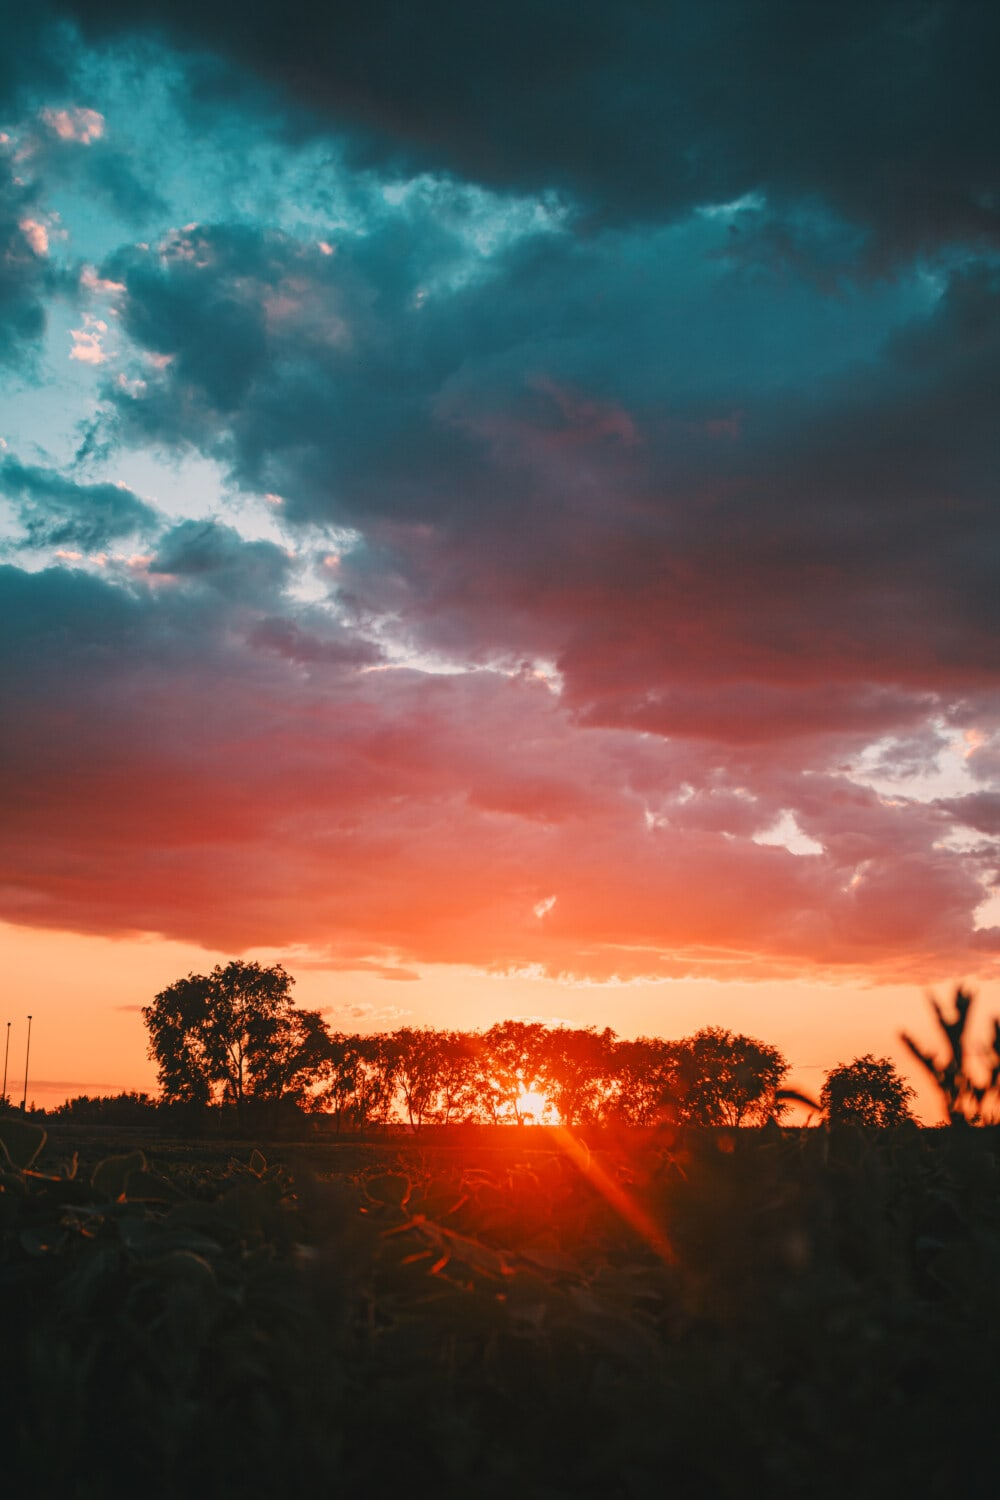 dramatic, sunset, field, rural, agricultural, clouds, dawn, landscape, atmosphere, sun